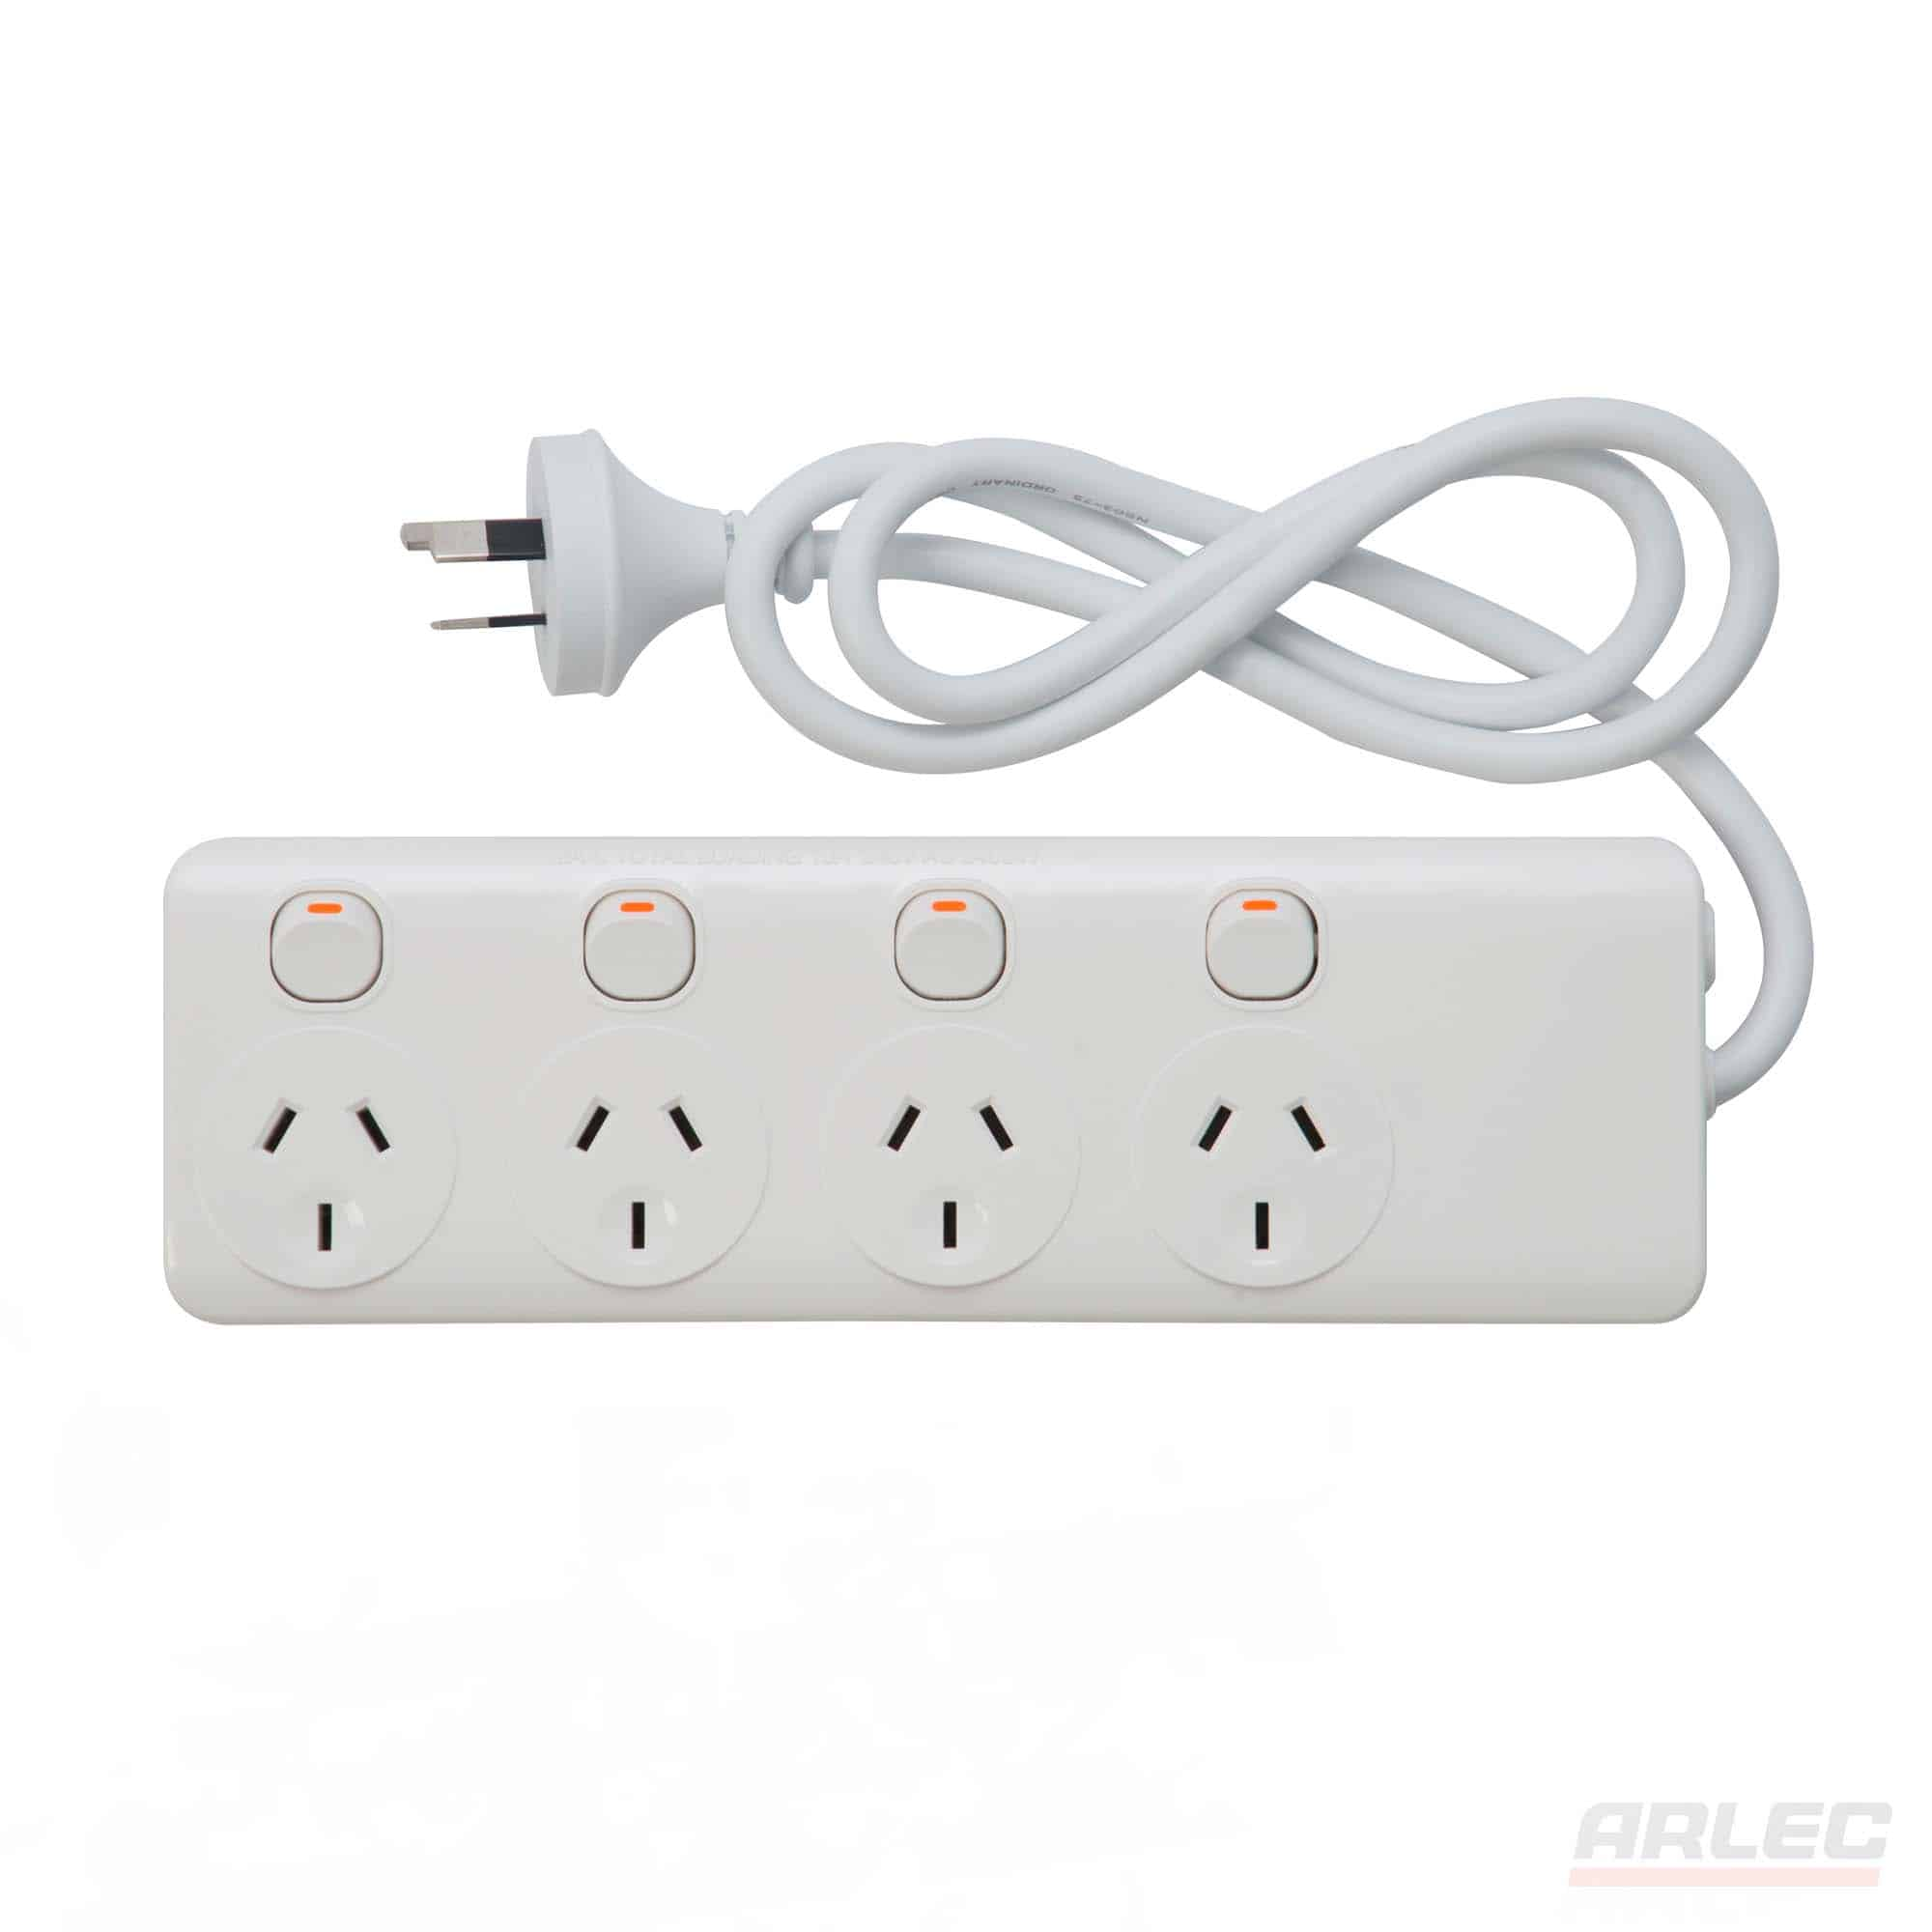 4 outlet individually switch